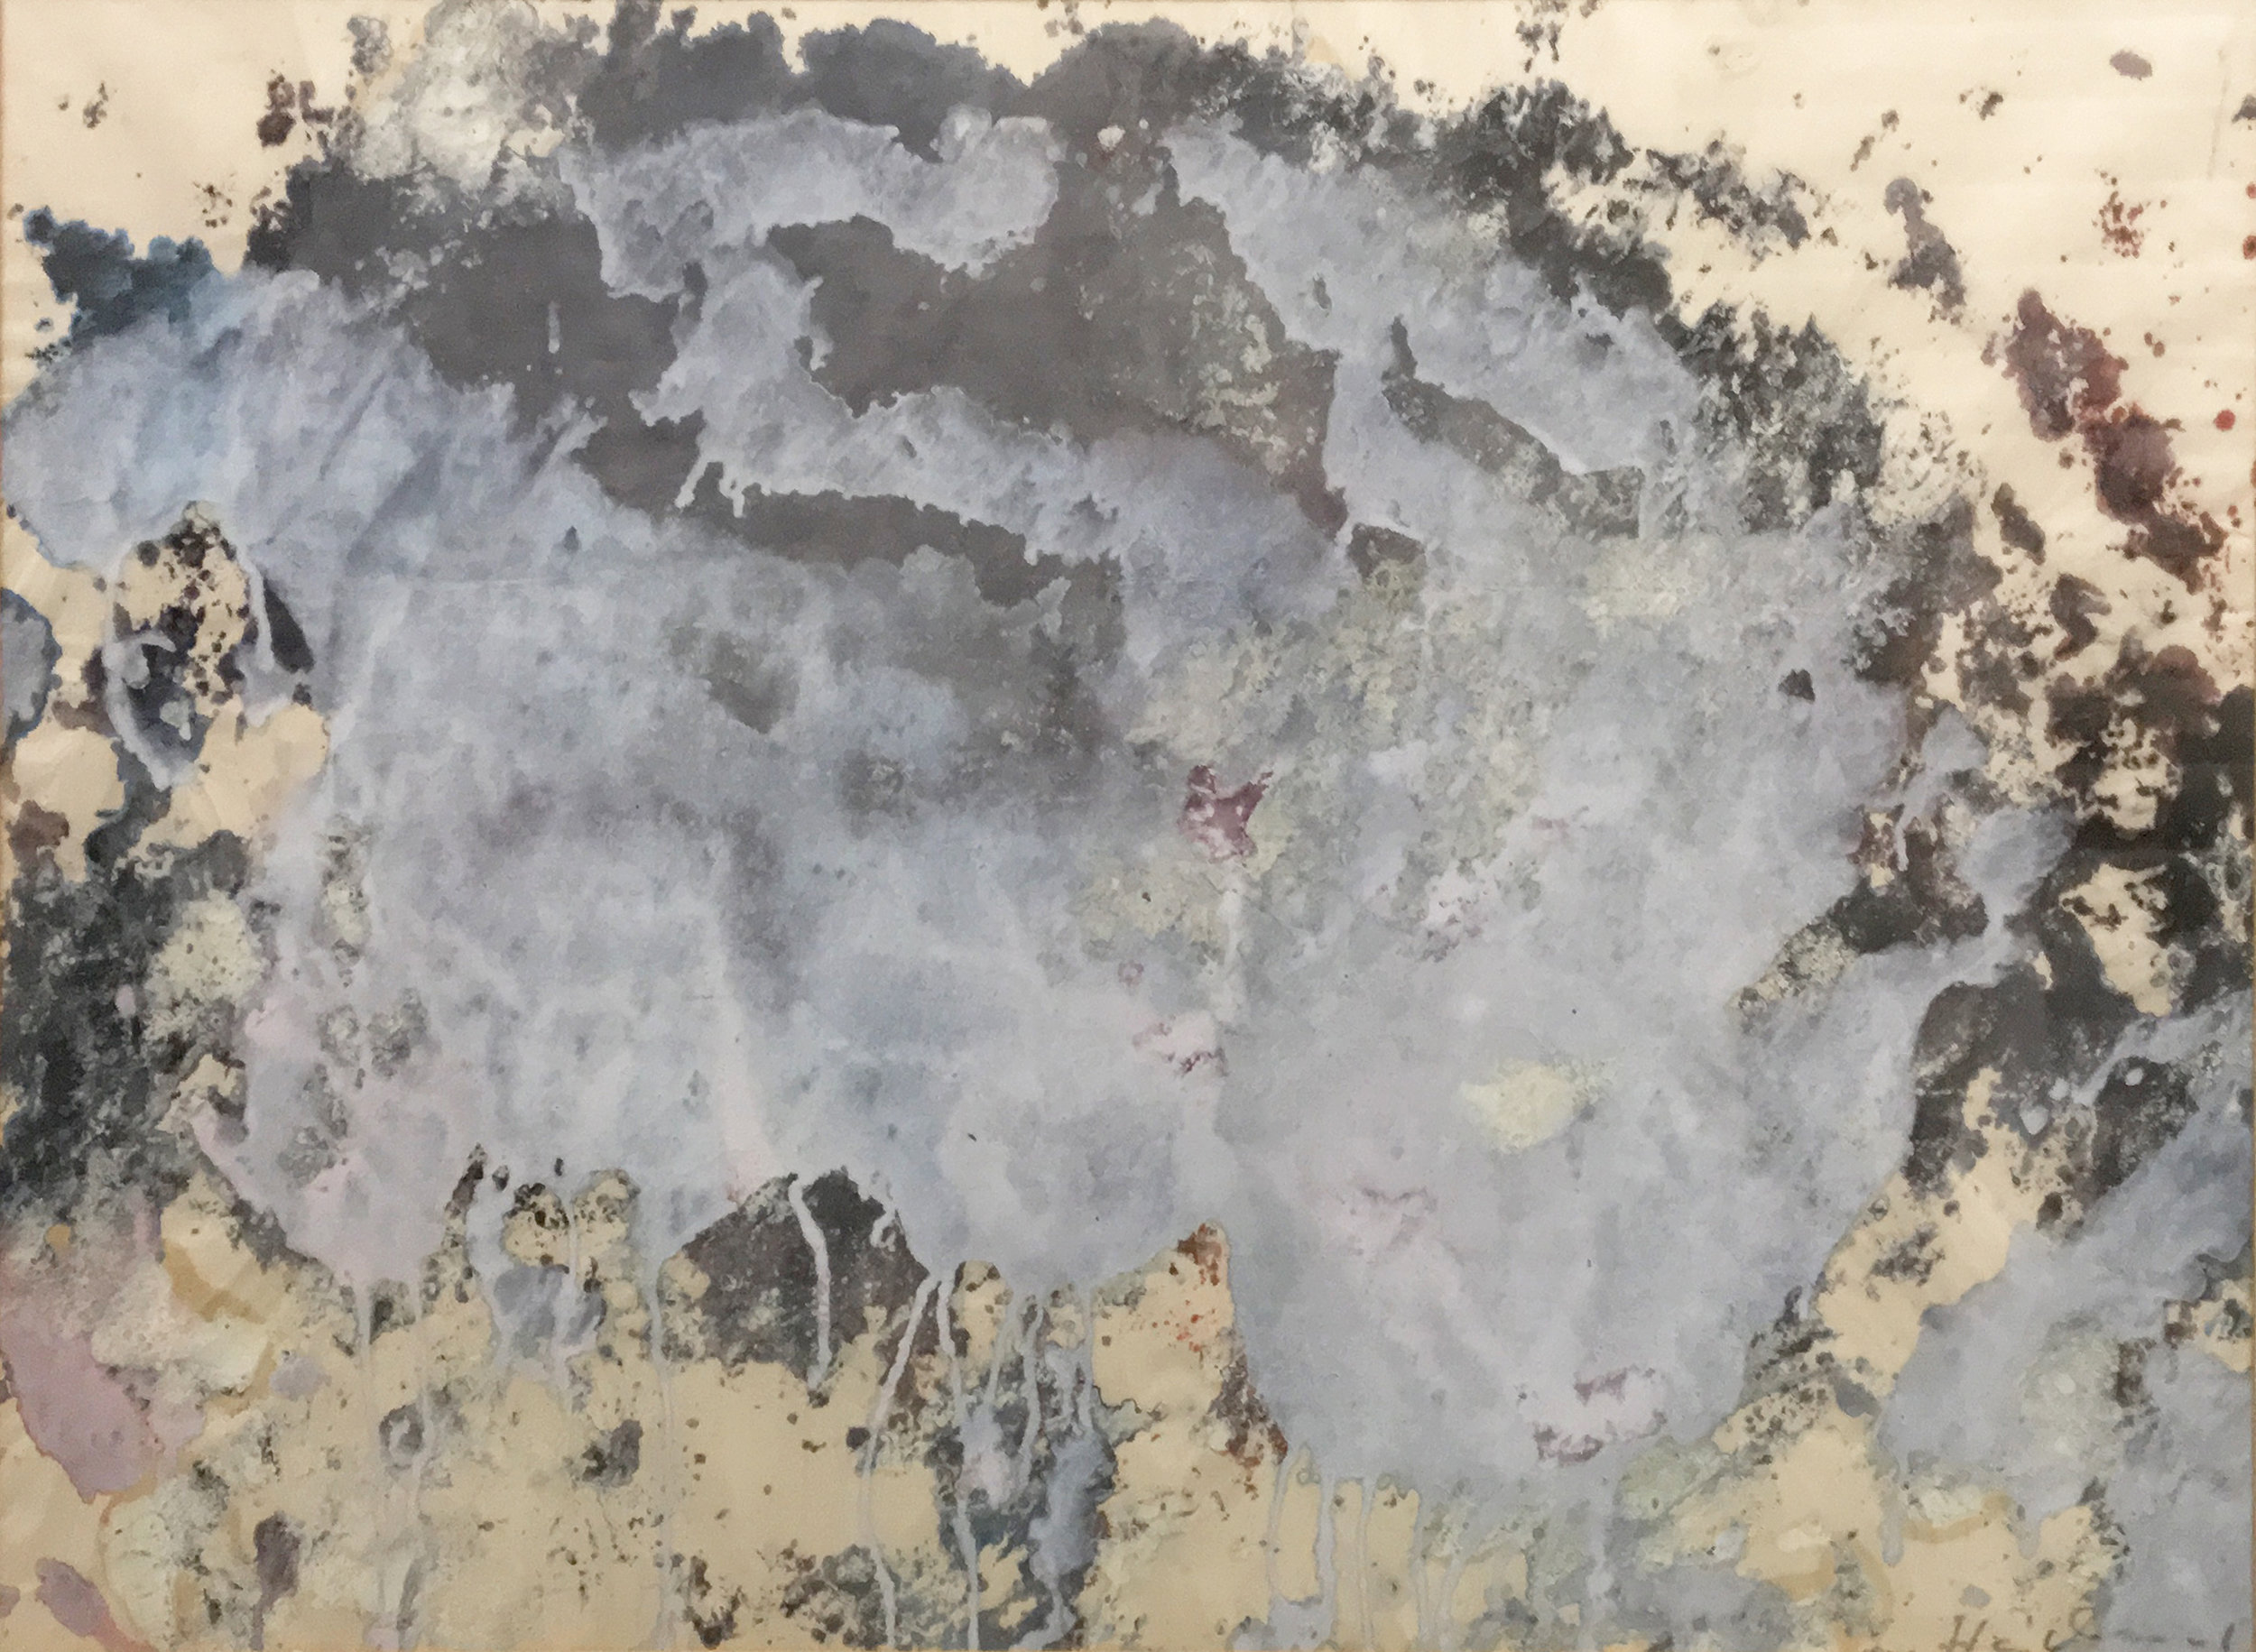 CARL HEIDENREICH,  UNTITLED  (LANDSCAPE IN WHITE AND BLUE), CIRCA 1961. WATERCOLOR ON PAPER. 21 X 29 INCHES. COLLECTION OF THE CARL HEIDENREICH FOUNDATION.